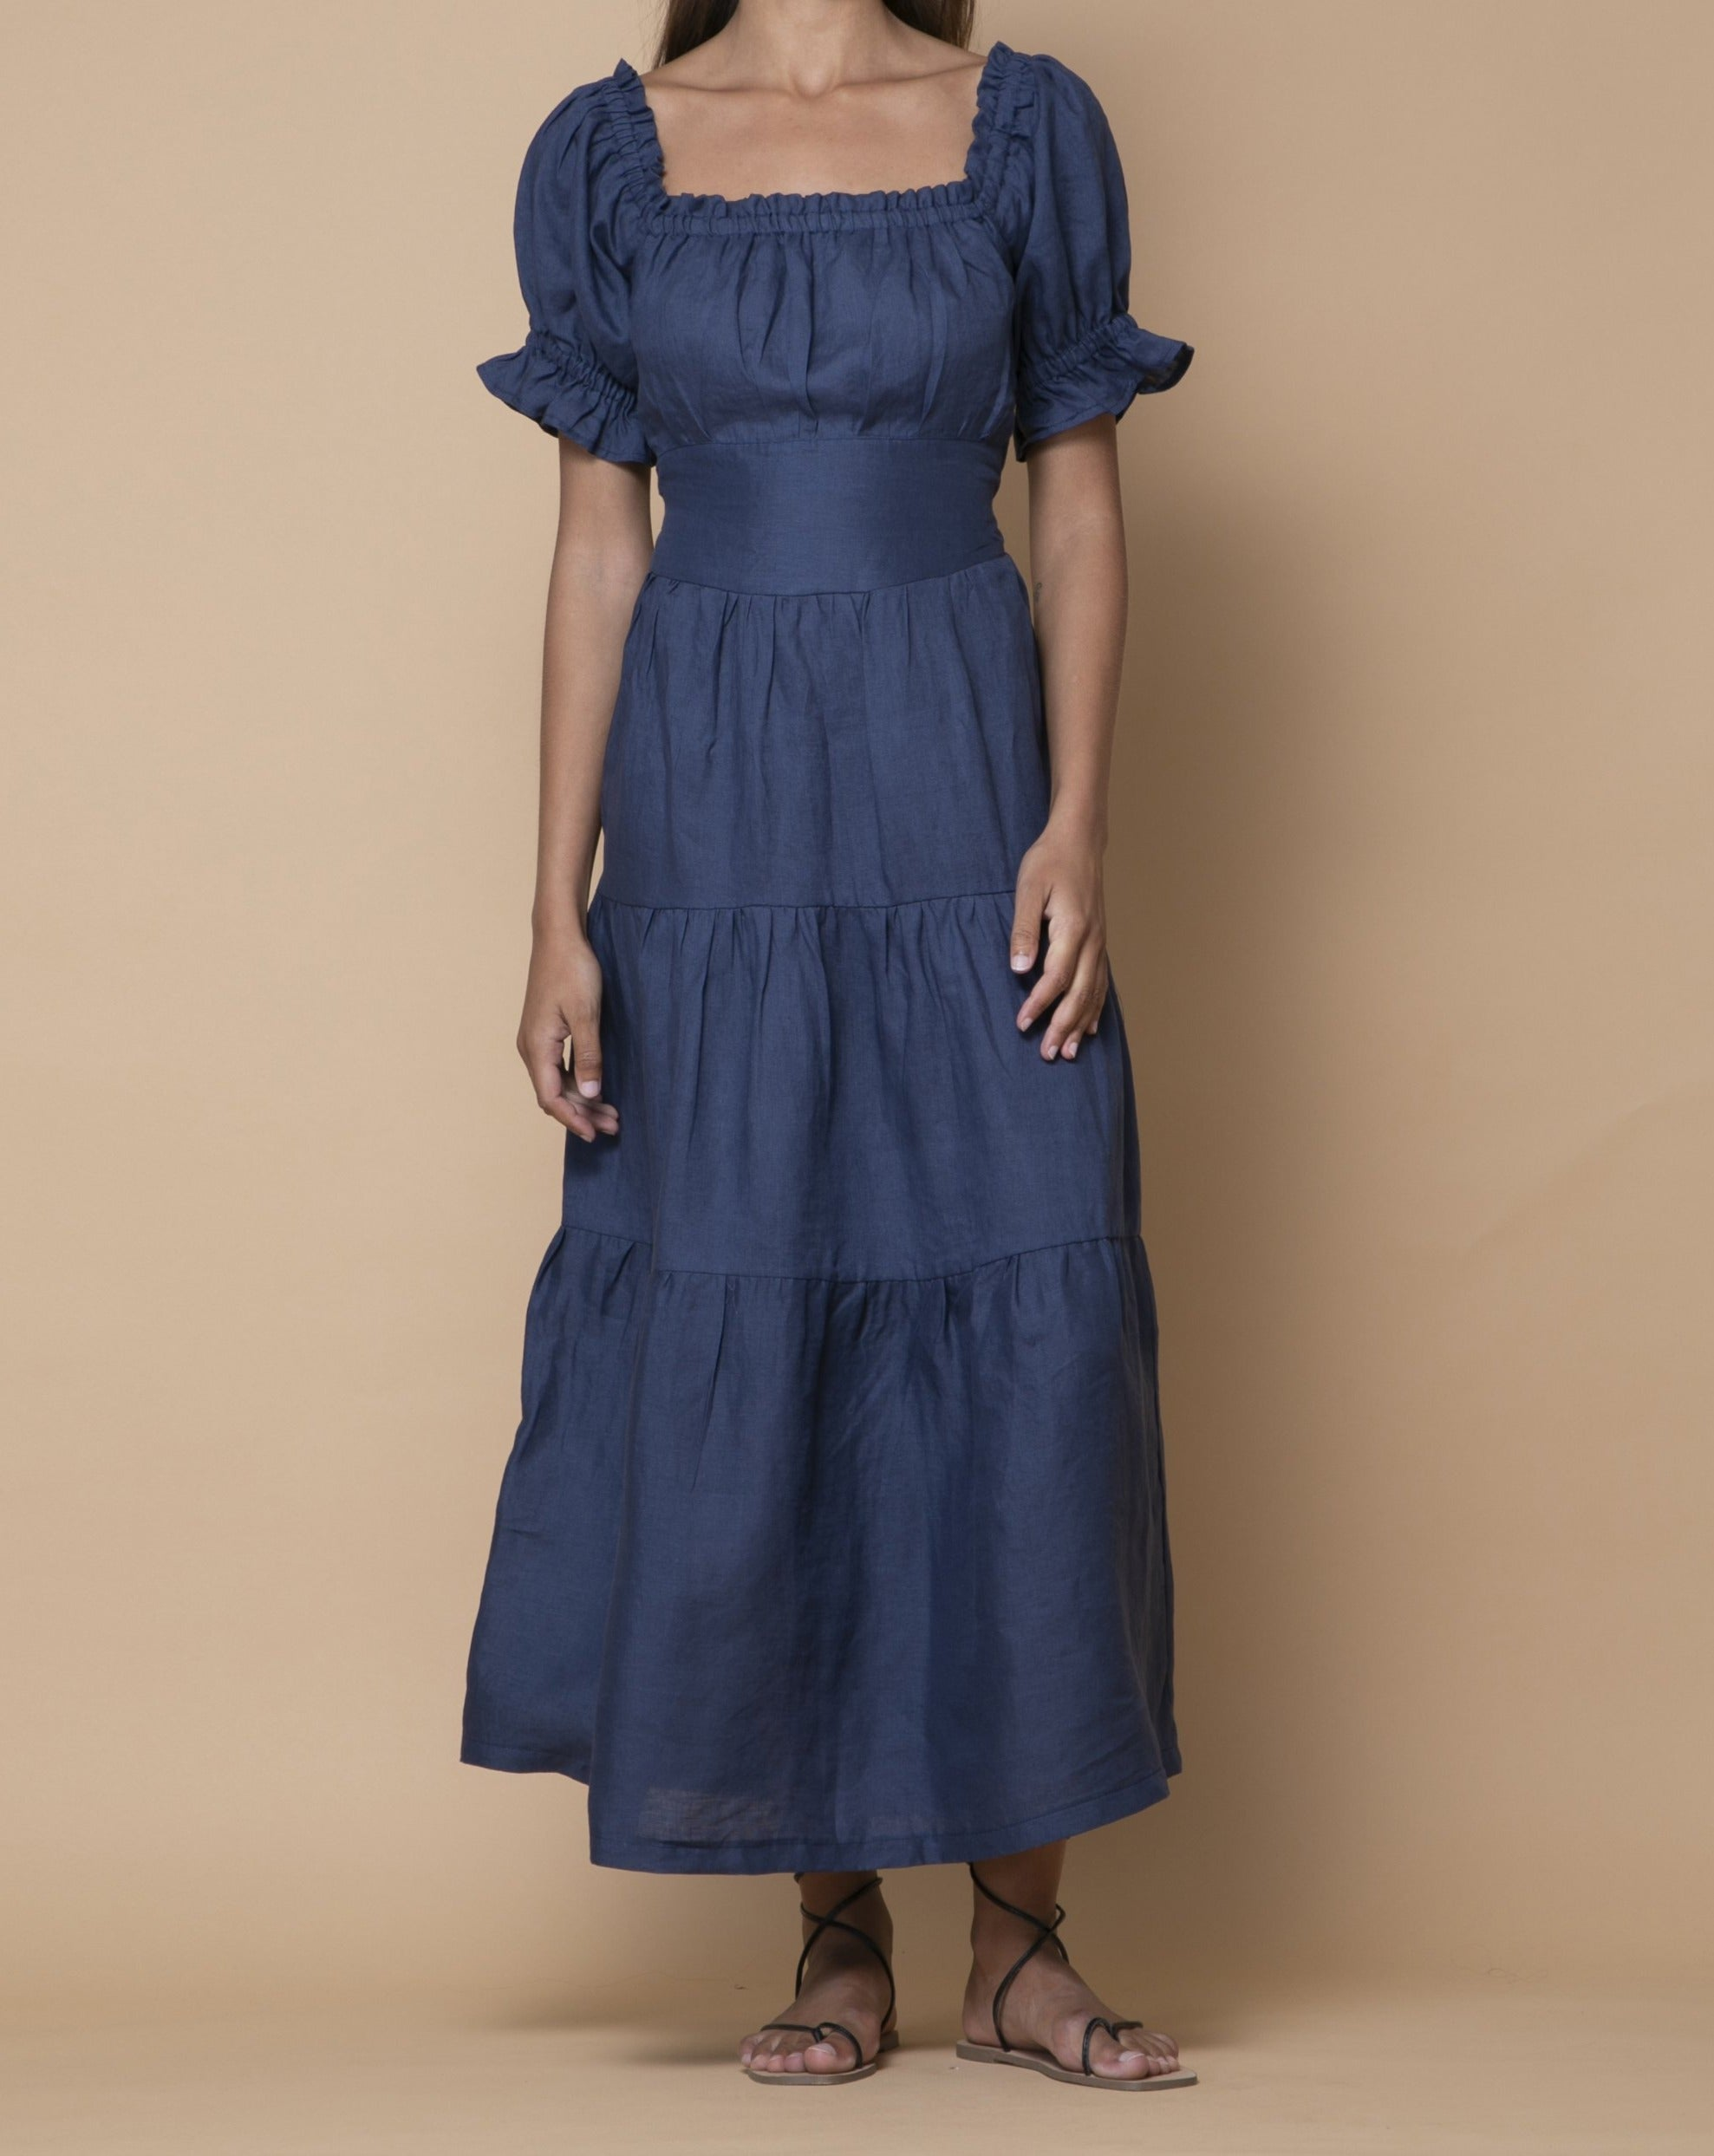 Navy Levis Australian Handmade Premium Linen Elastic Neckline Square Neck Full Length Tiered Dress with Off Shoulder  Sleeves & Detailed Waist Boutique Designer Summer Casual Cocktail